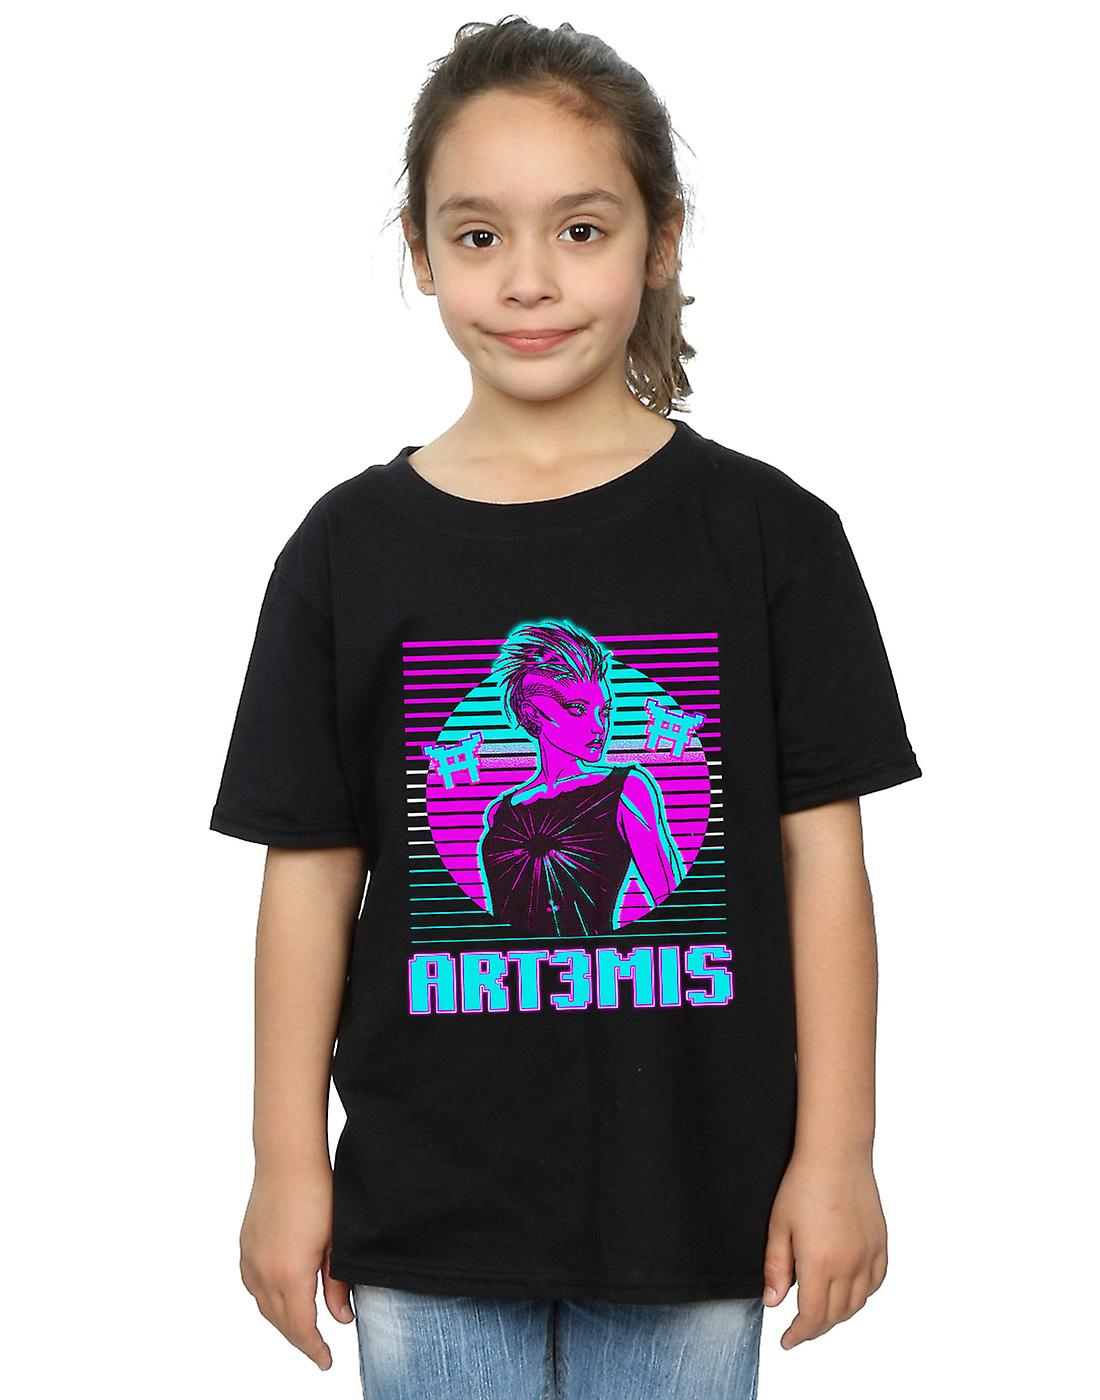 Ready Player One Girls Neon Art3mis T-Shirt